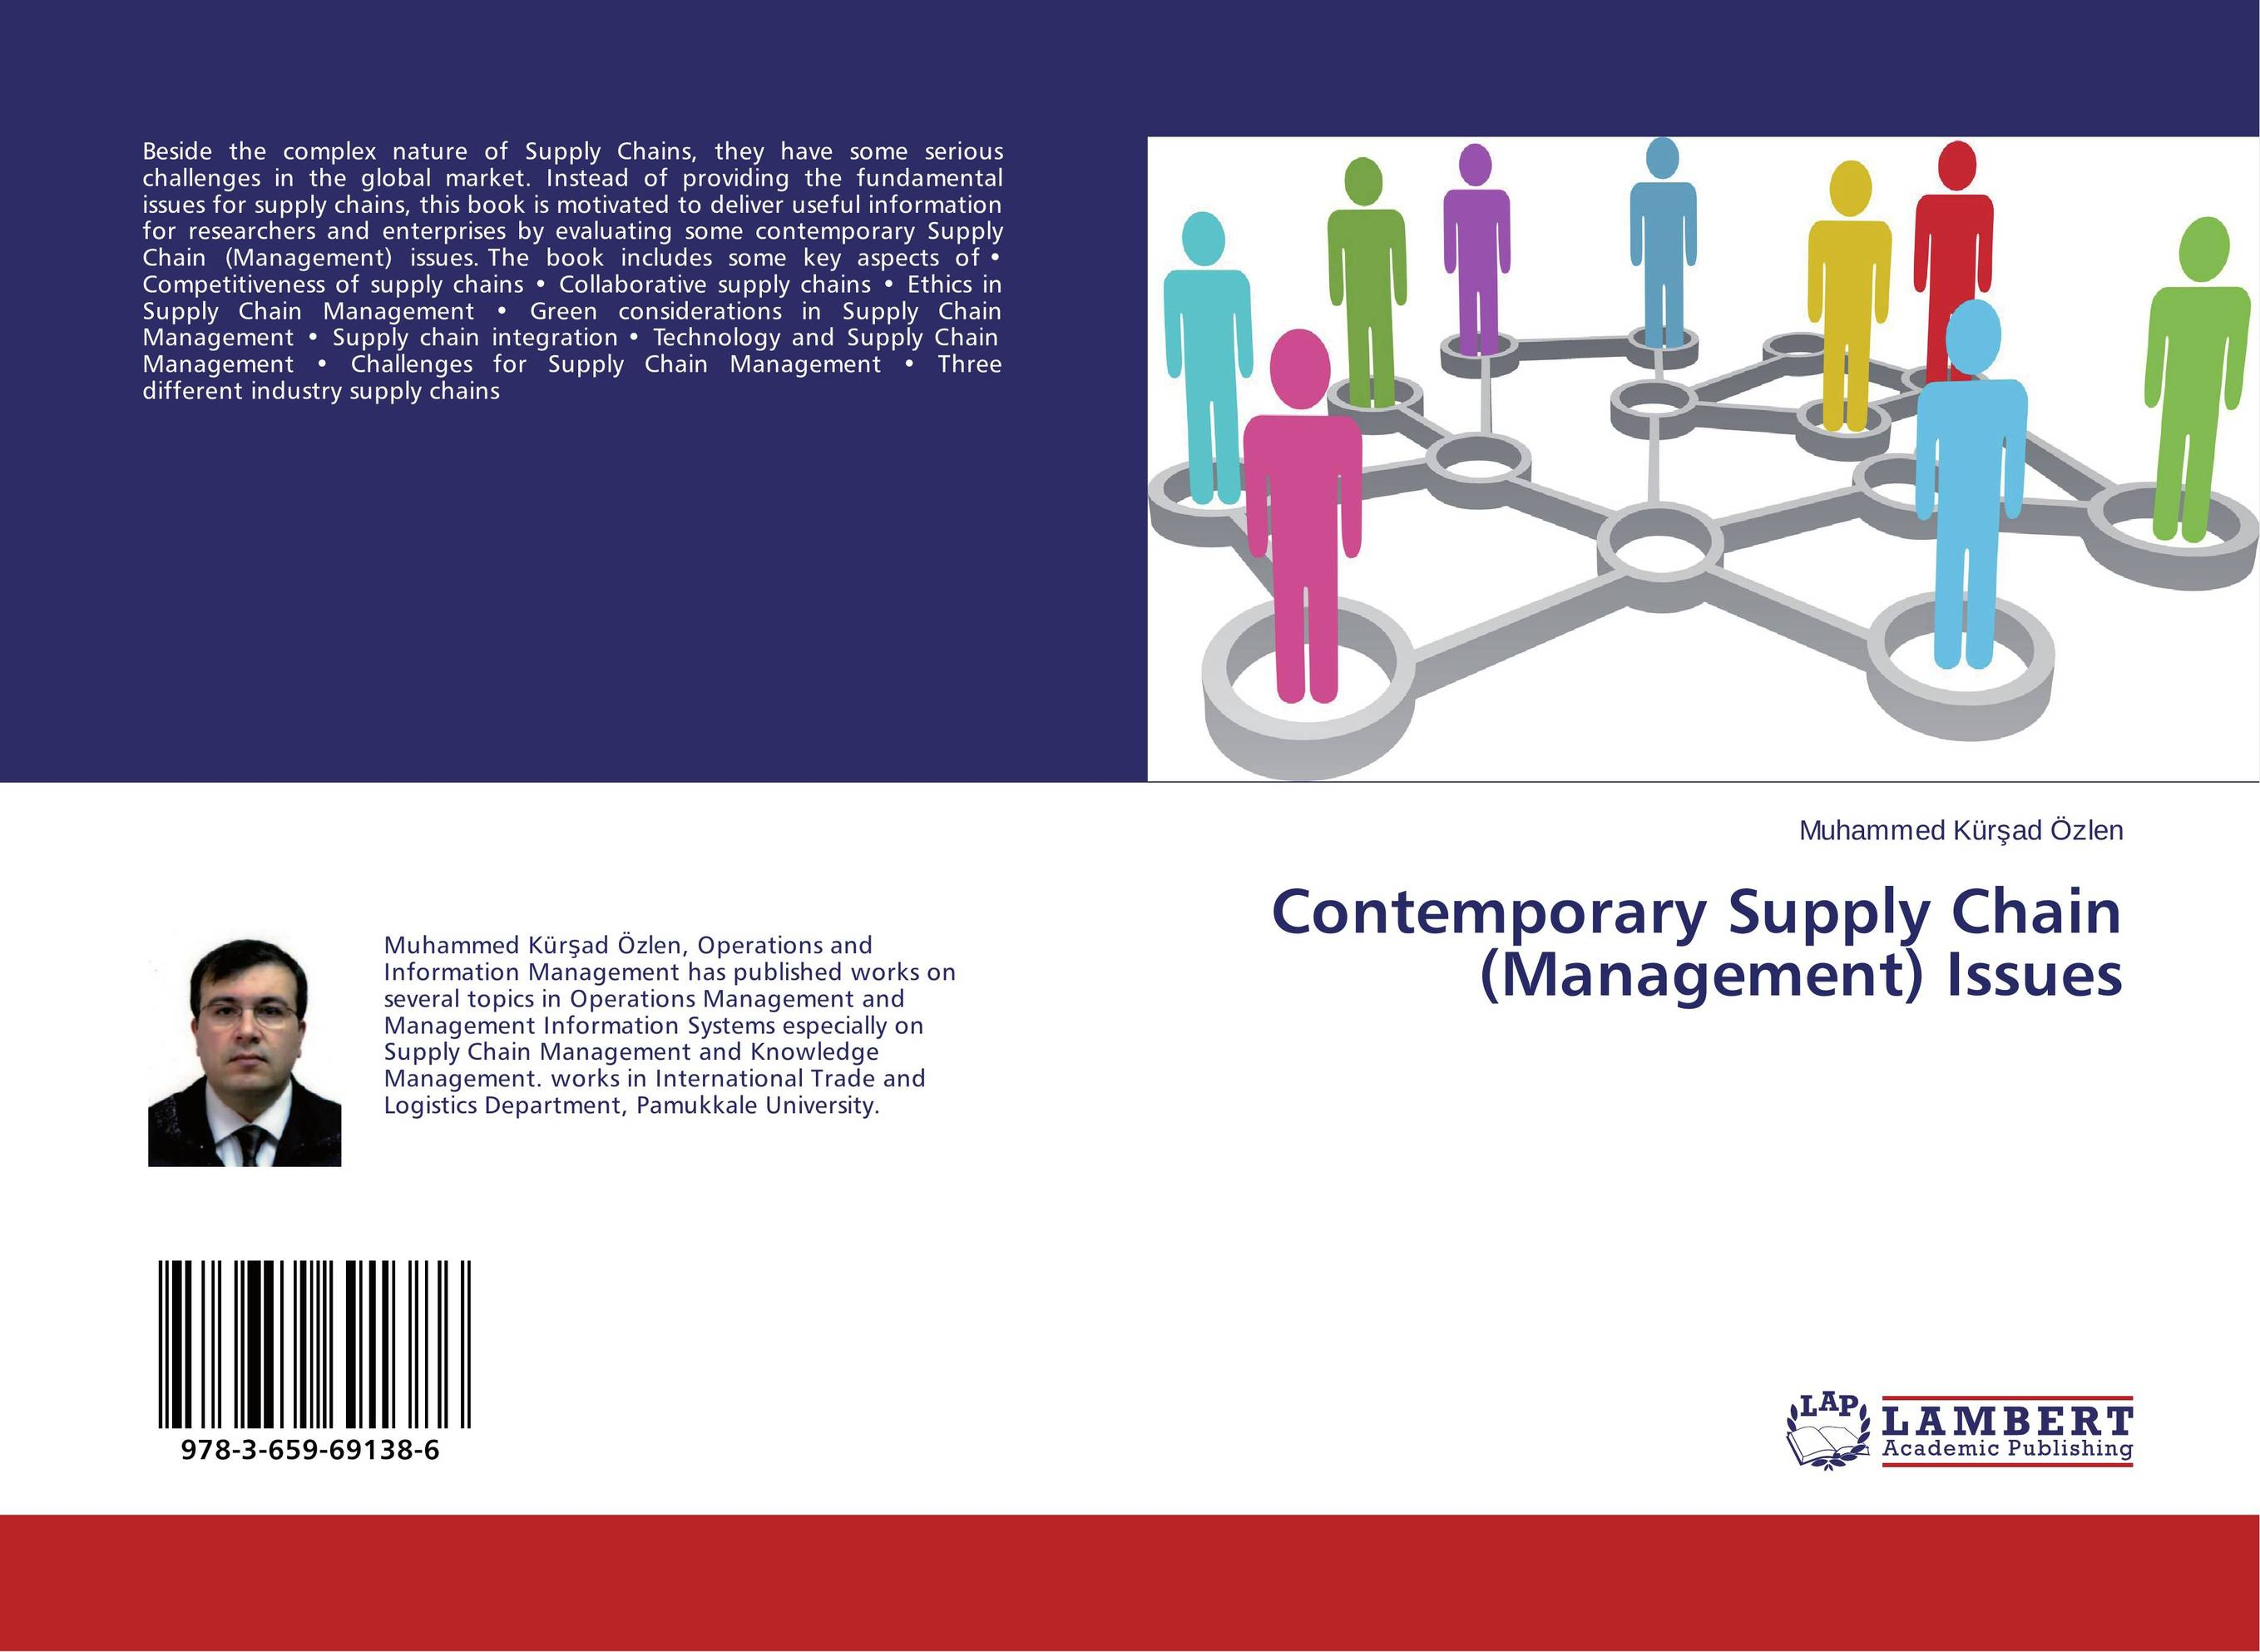 Contemporary Supply Chain (Management) Issues vengadasan govindasamy sustainable supply chain management practices